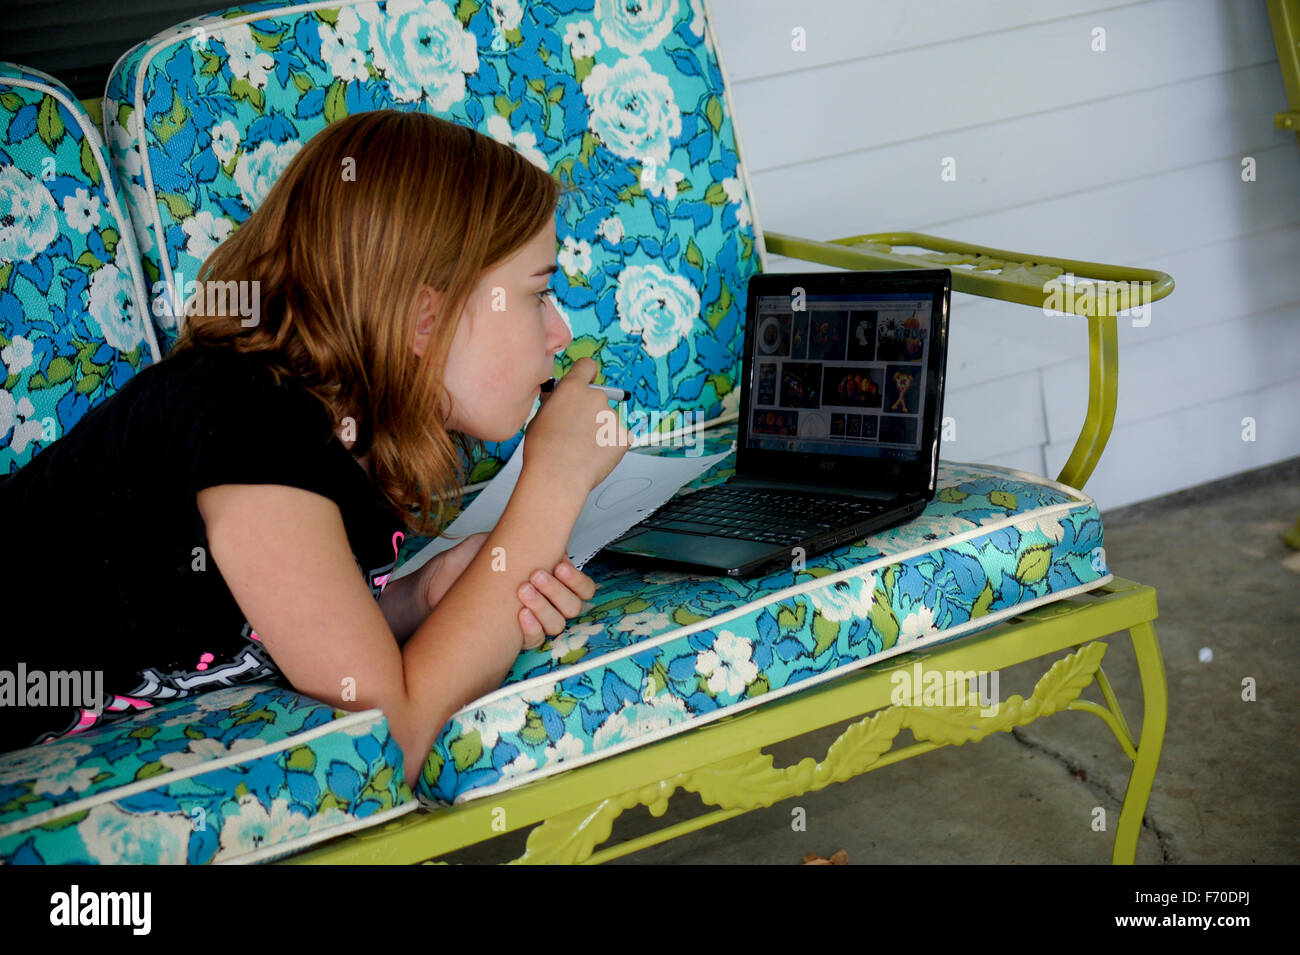 Pre-teen girl using the internet on laptop to design a drawing Stock Photo